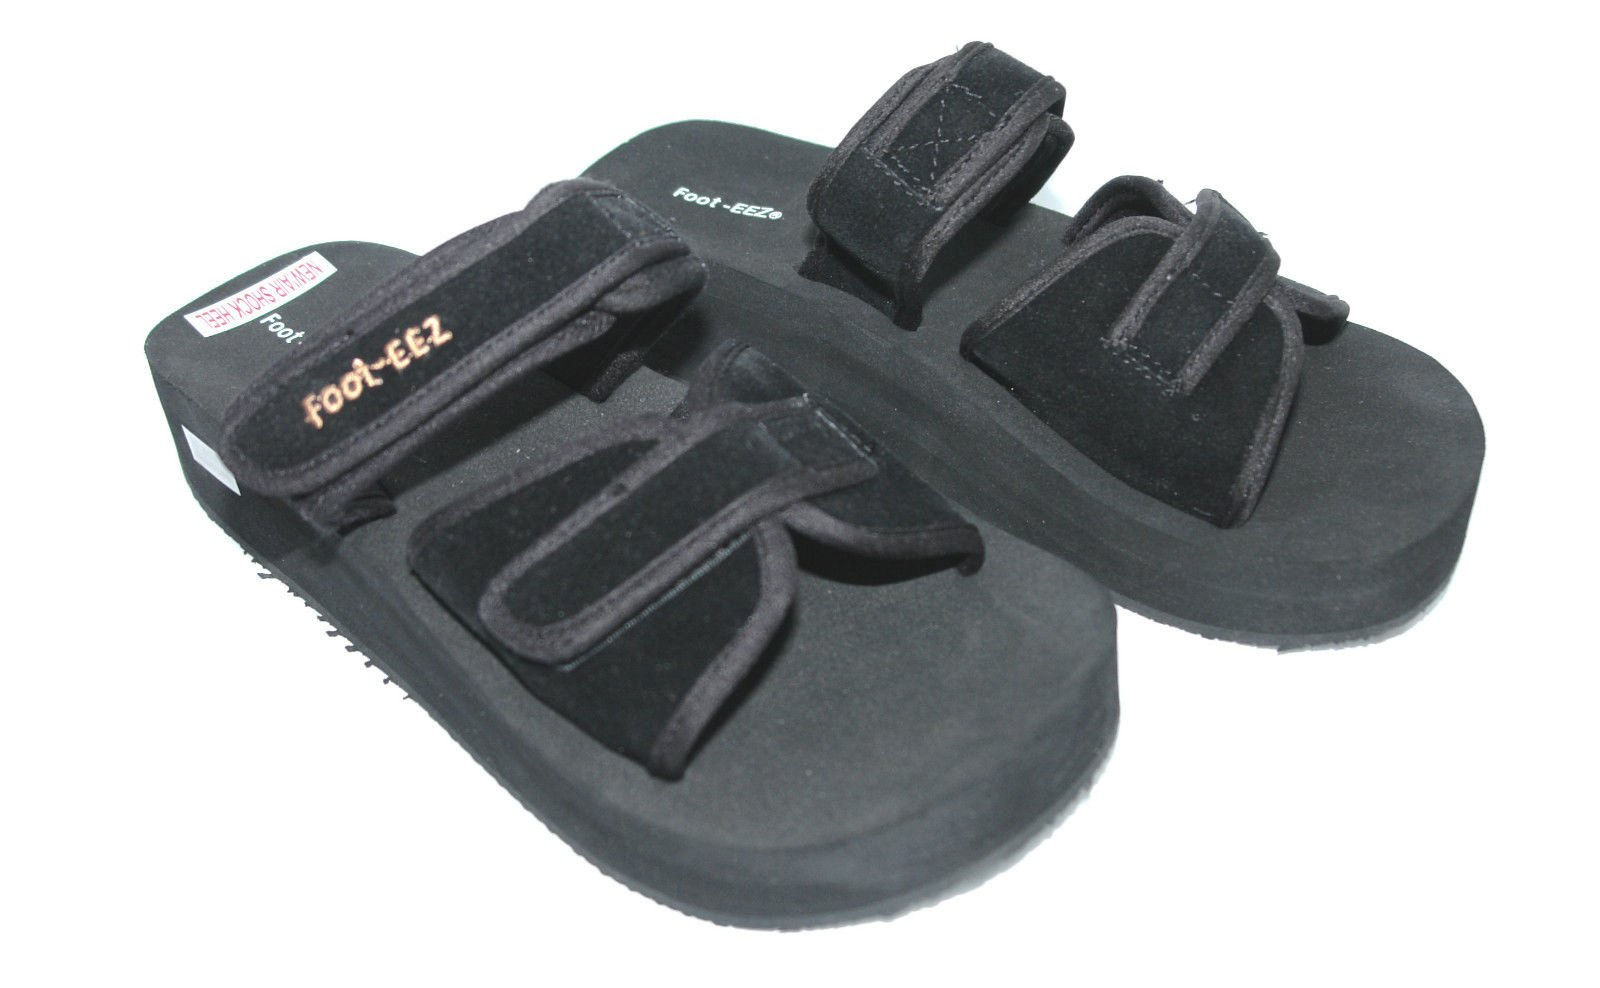 Foot-EEZ Black Unisex Diabetic & Pain-Relief Double Strap Adjustable Sandals (Mens 8 / Ladies 9)